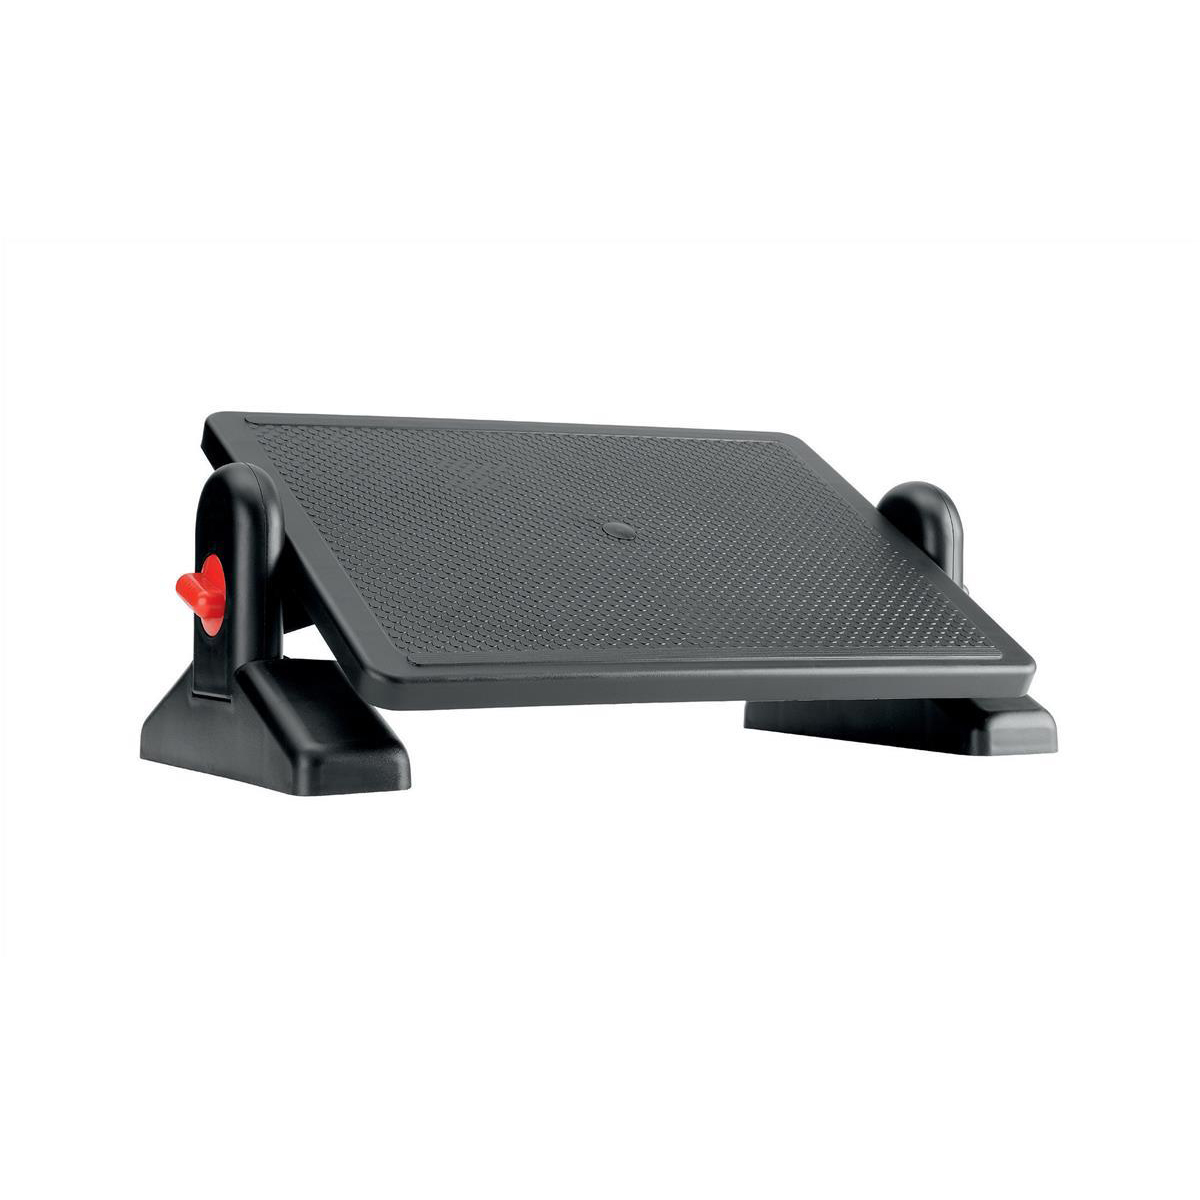 Office Footrest ABS Plastic Easy Tilt H115-145mm Platform 415x305mm Ref FR002